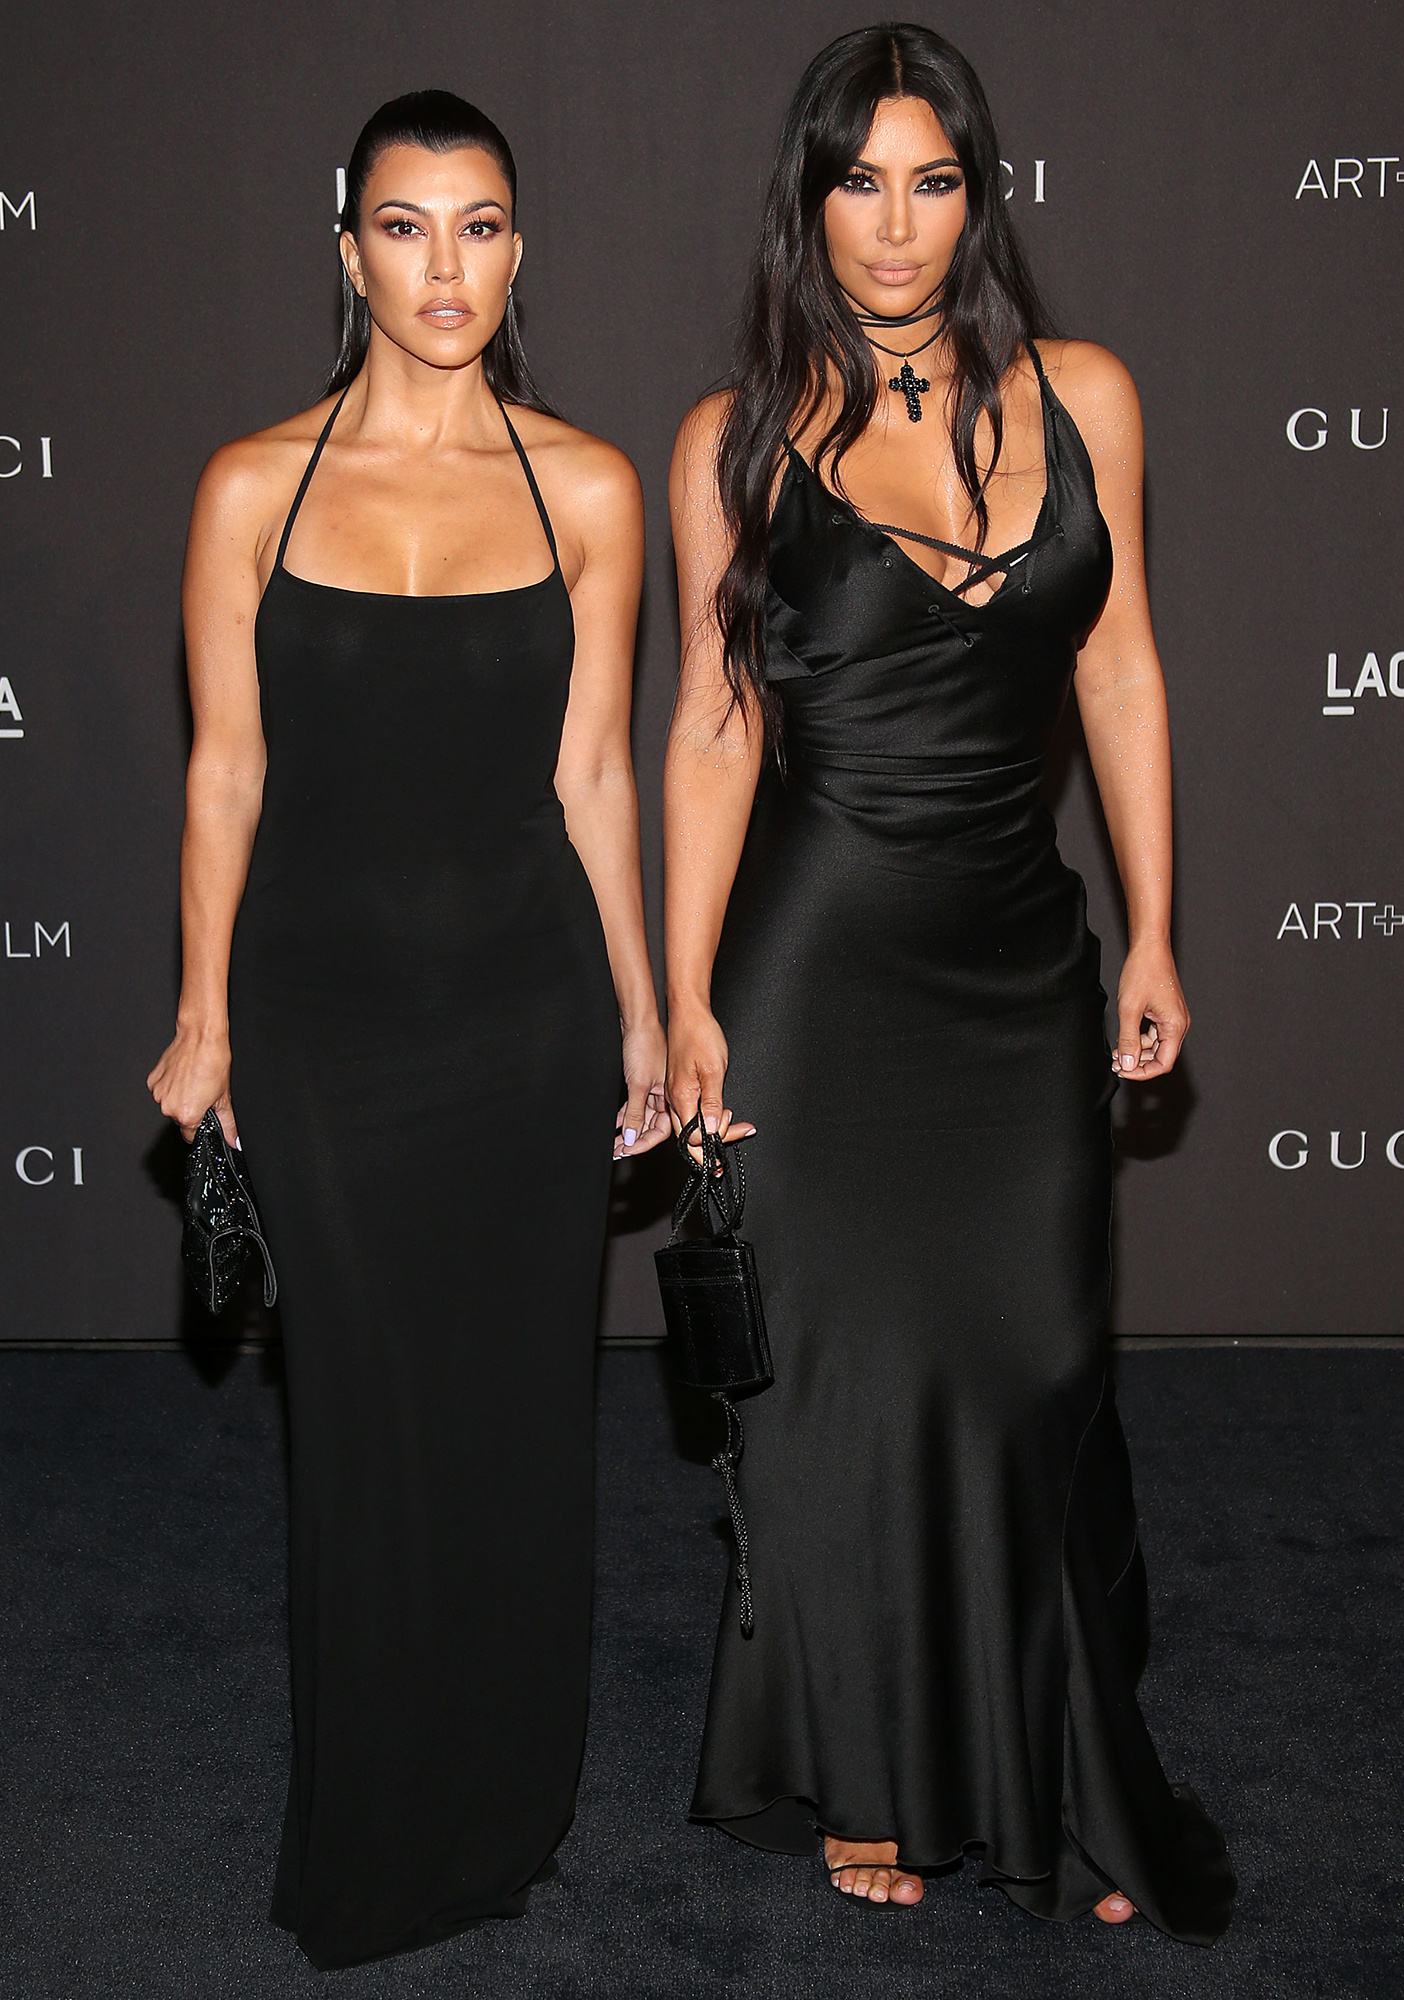 Kim Kardashian Says Sister Kourtney Is the Most Likely to Sue Her: 'She Is Ruthless'